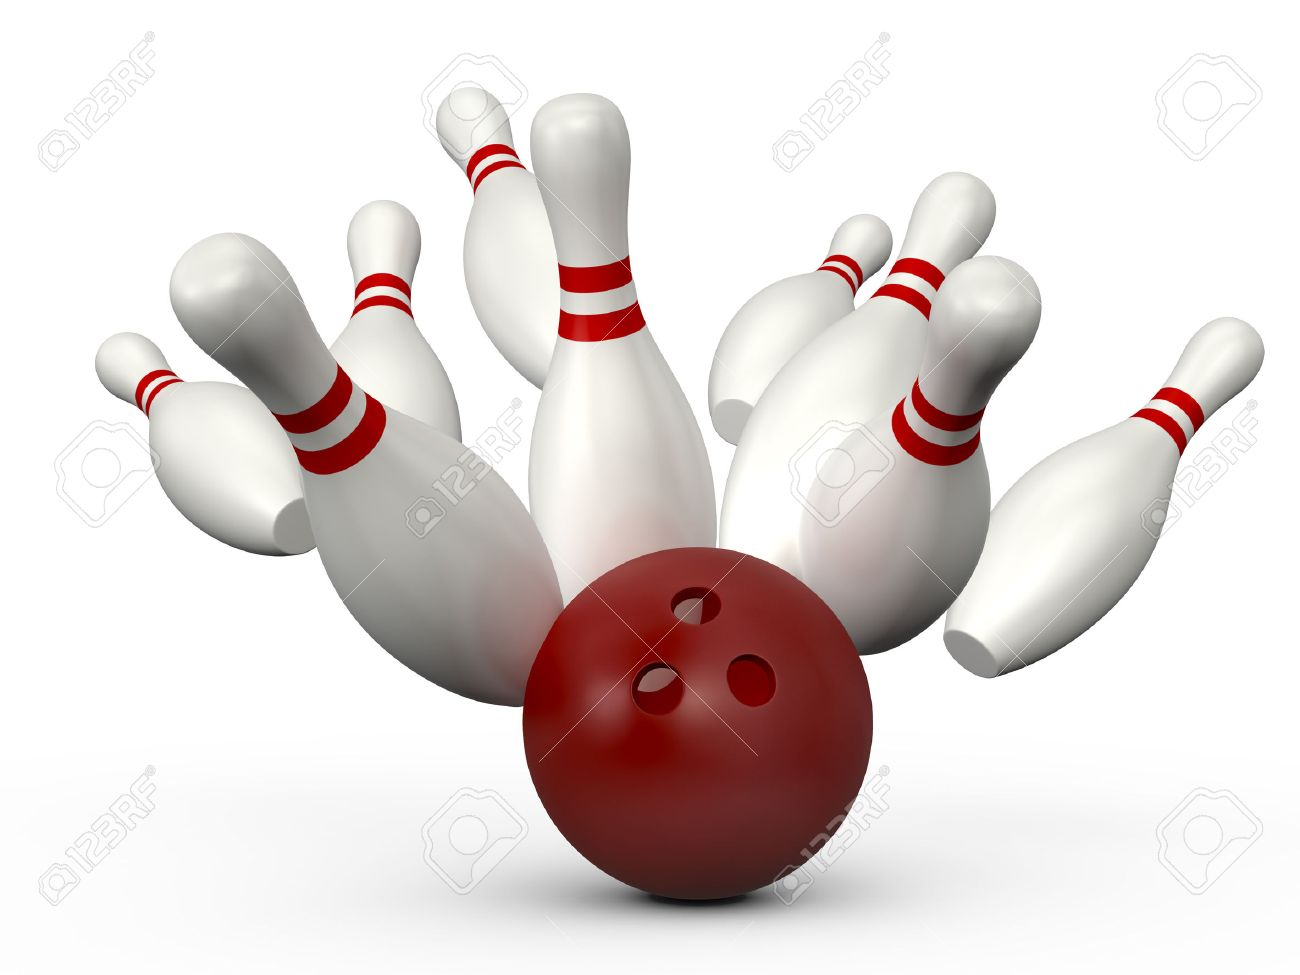 Red Bowling Ball Crashes Into The Bowling Pins With Red Stripes